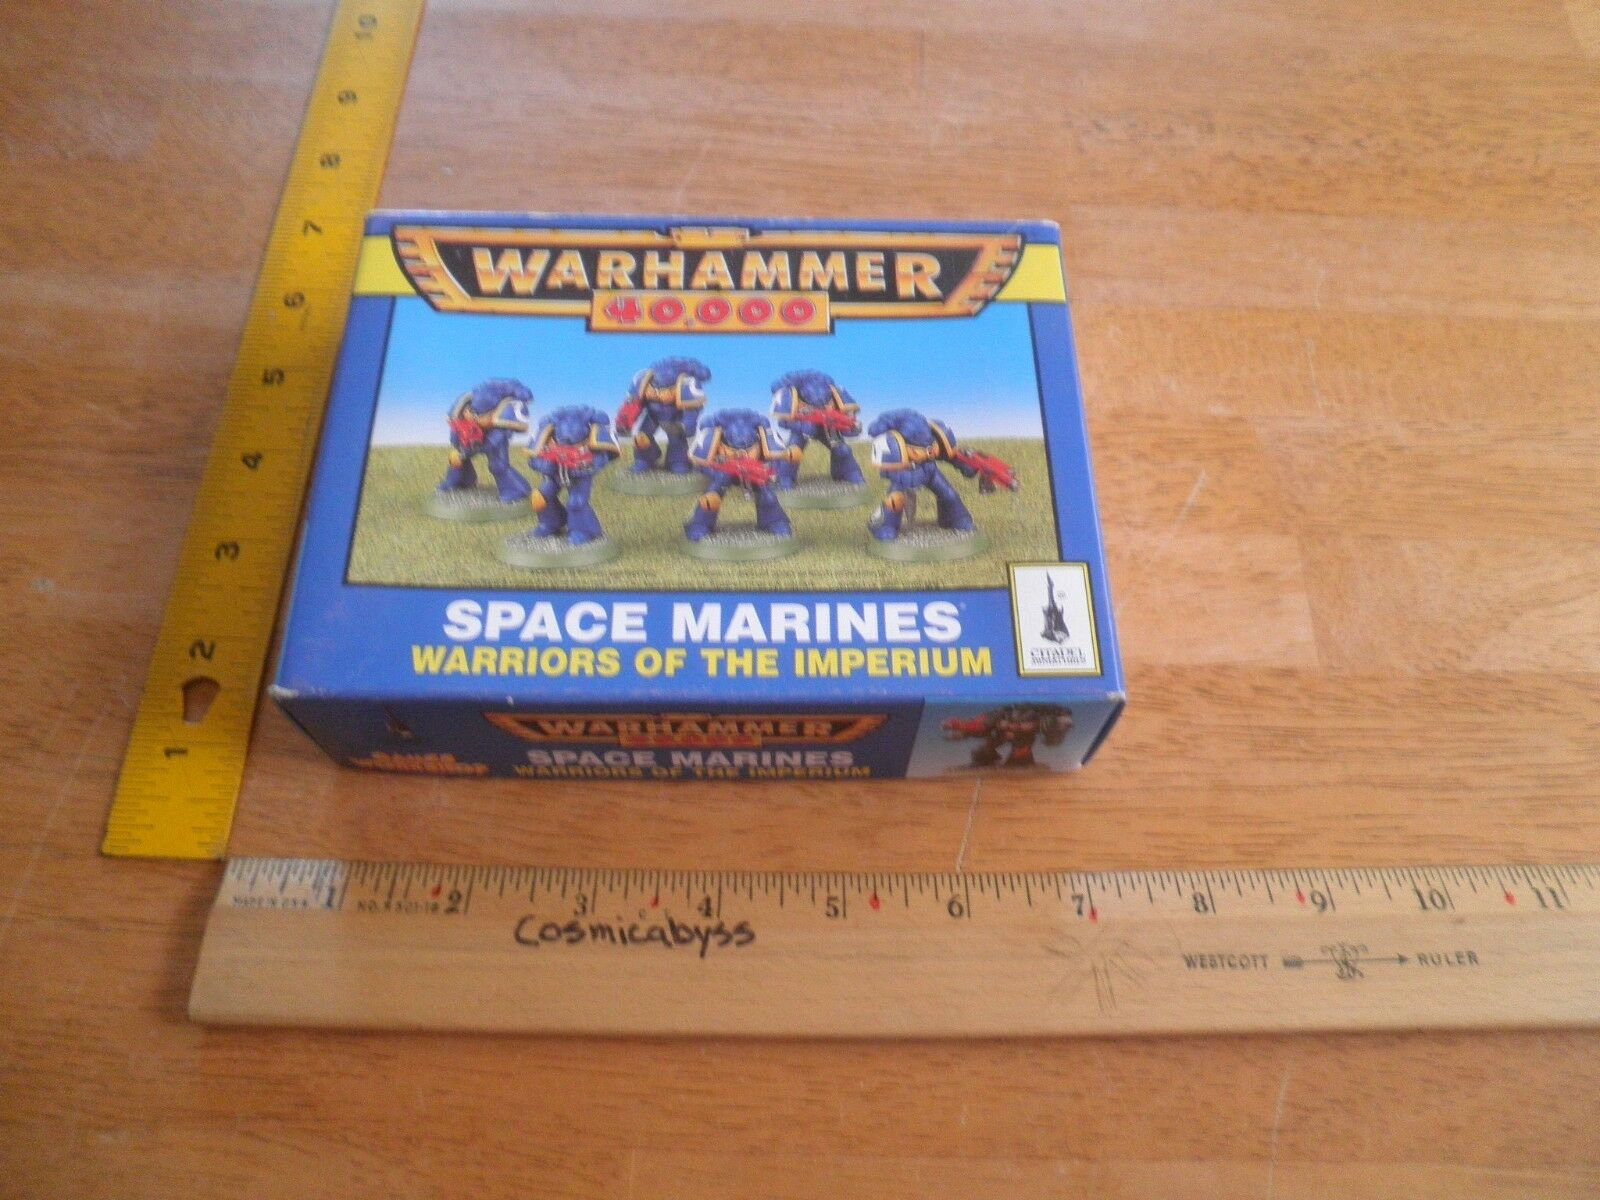 Space Marines Warhammer game figures figures figures Citadel 1984 in box 2ec1b4